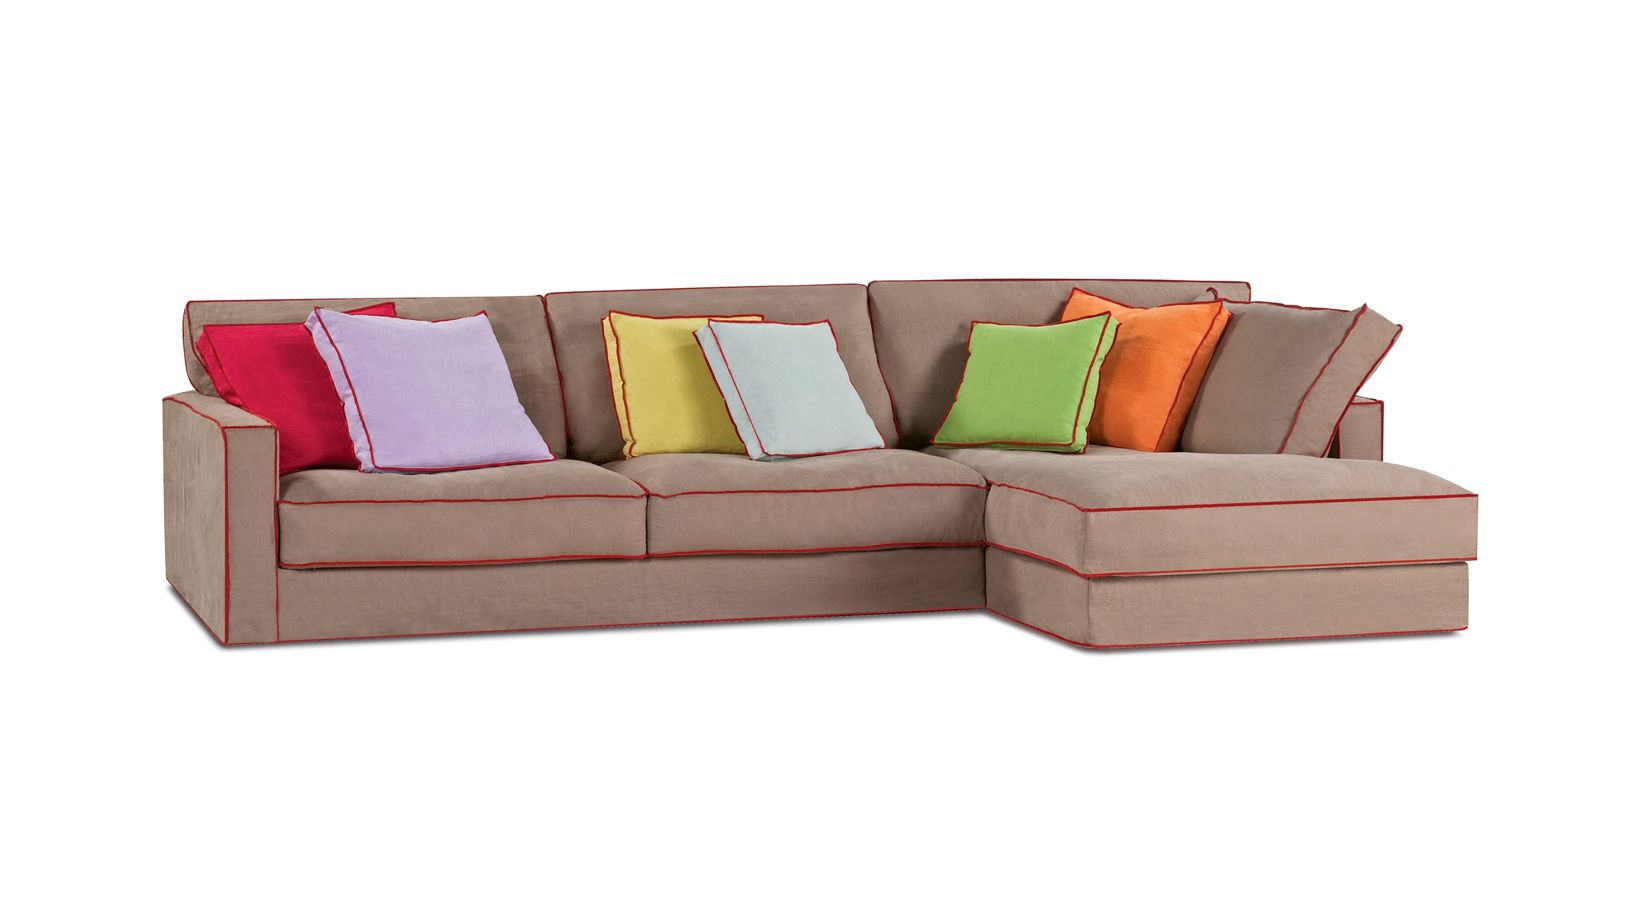 Roche bobois long island sofa refil sofa for Catalogue canape roche bobois